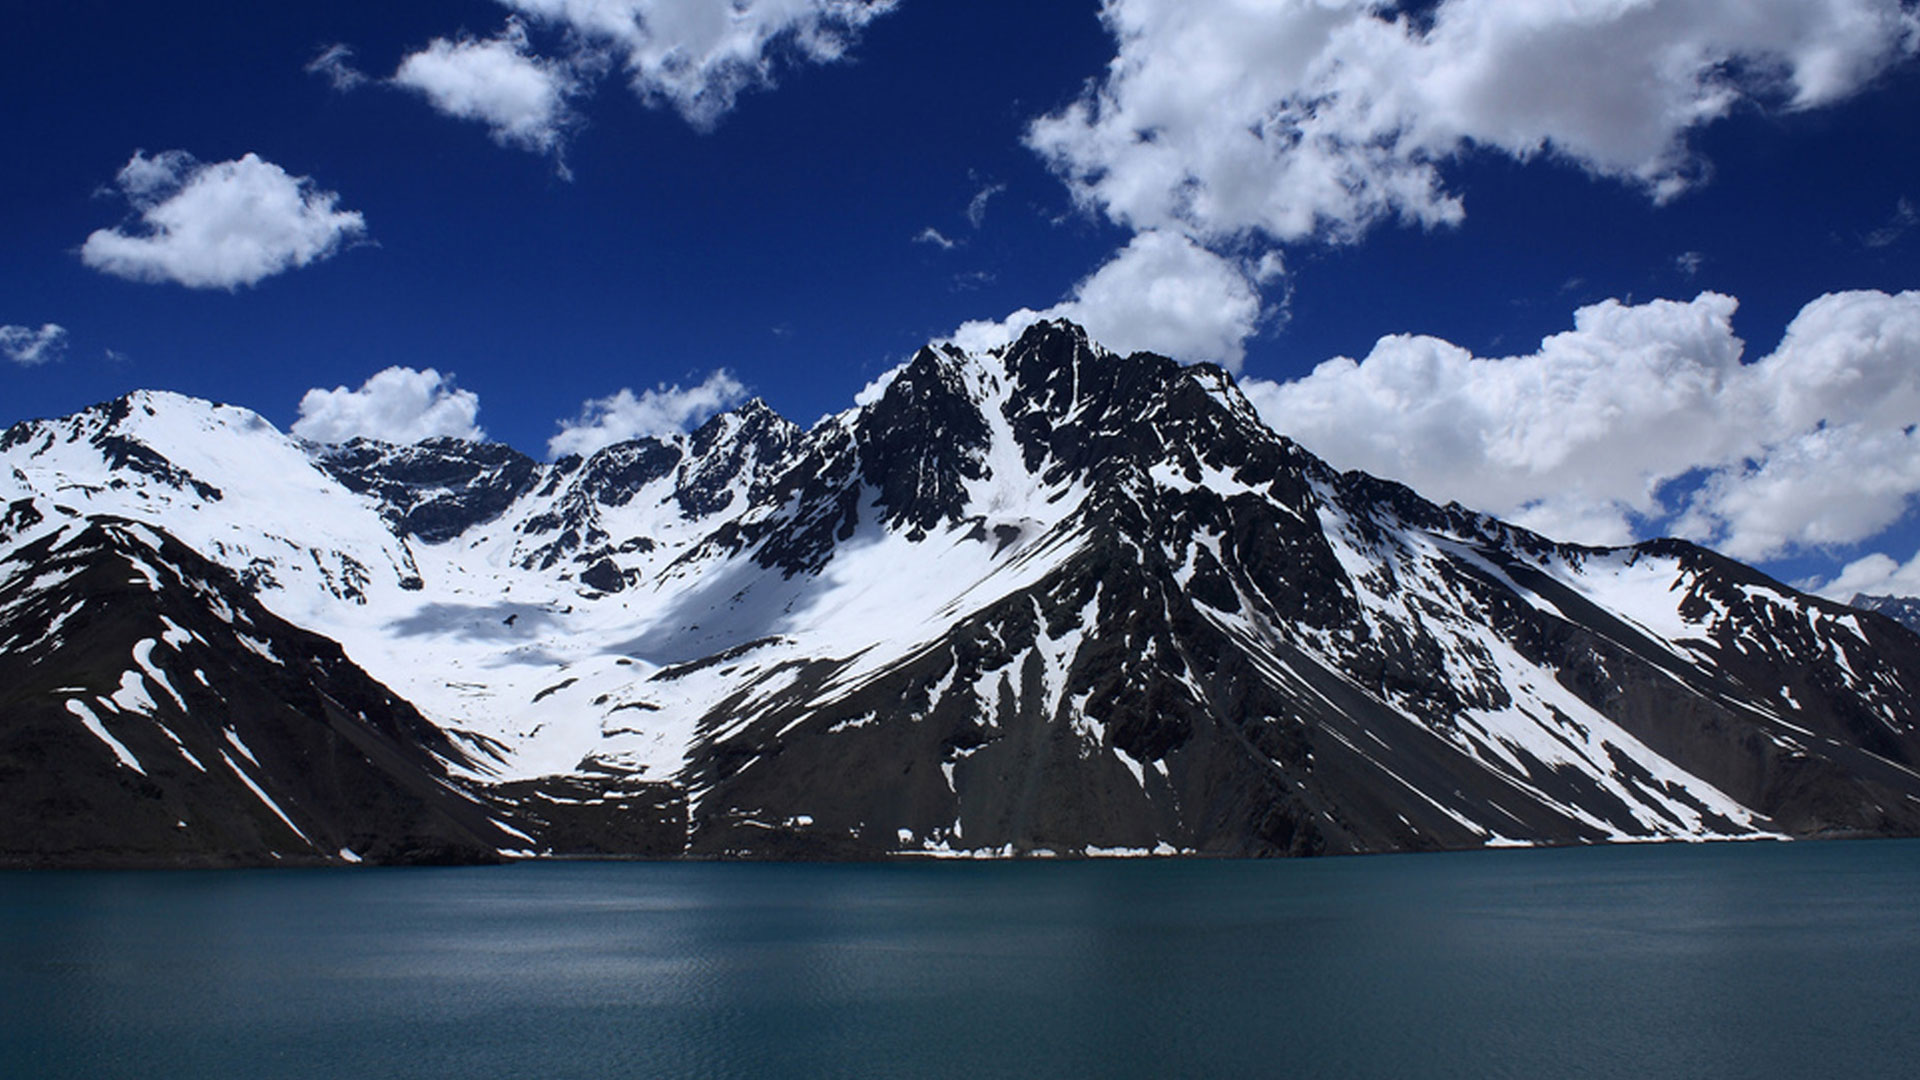 Embalse del yeso fotos 28